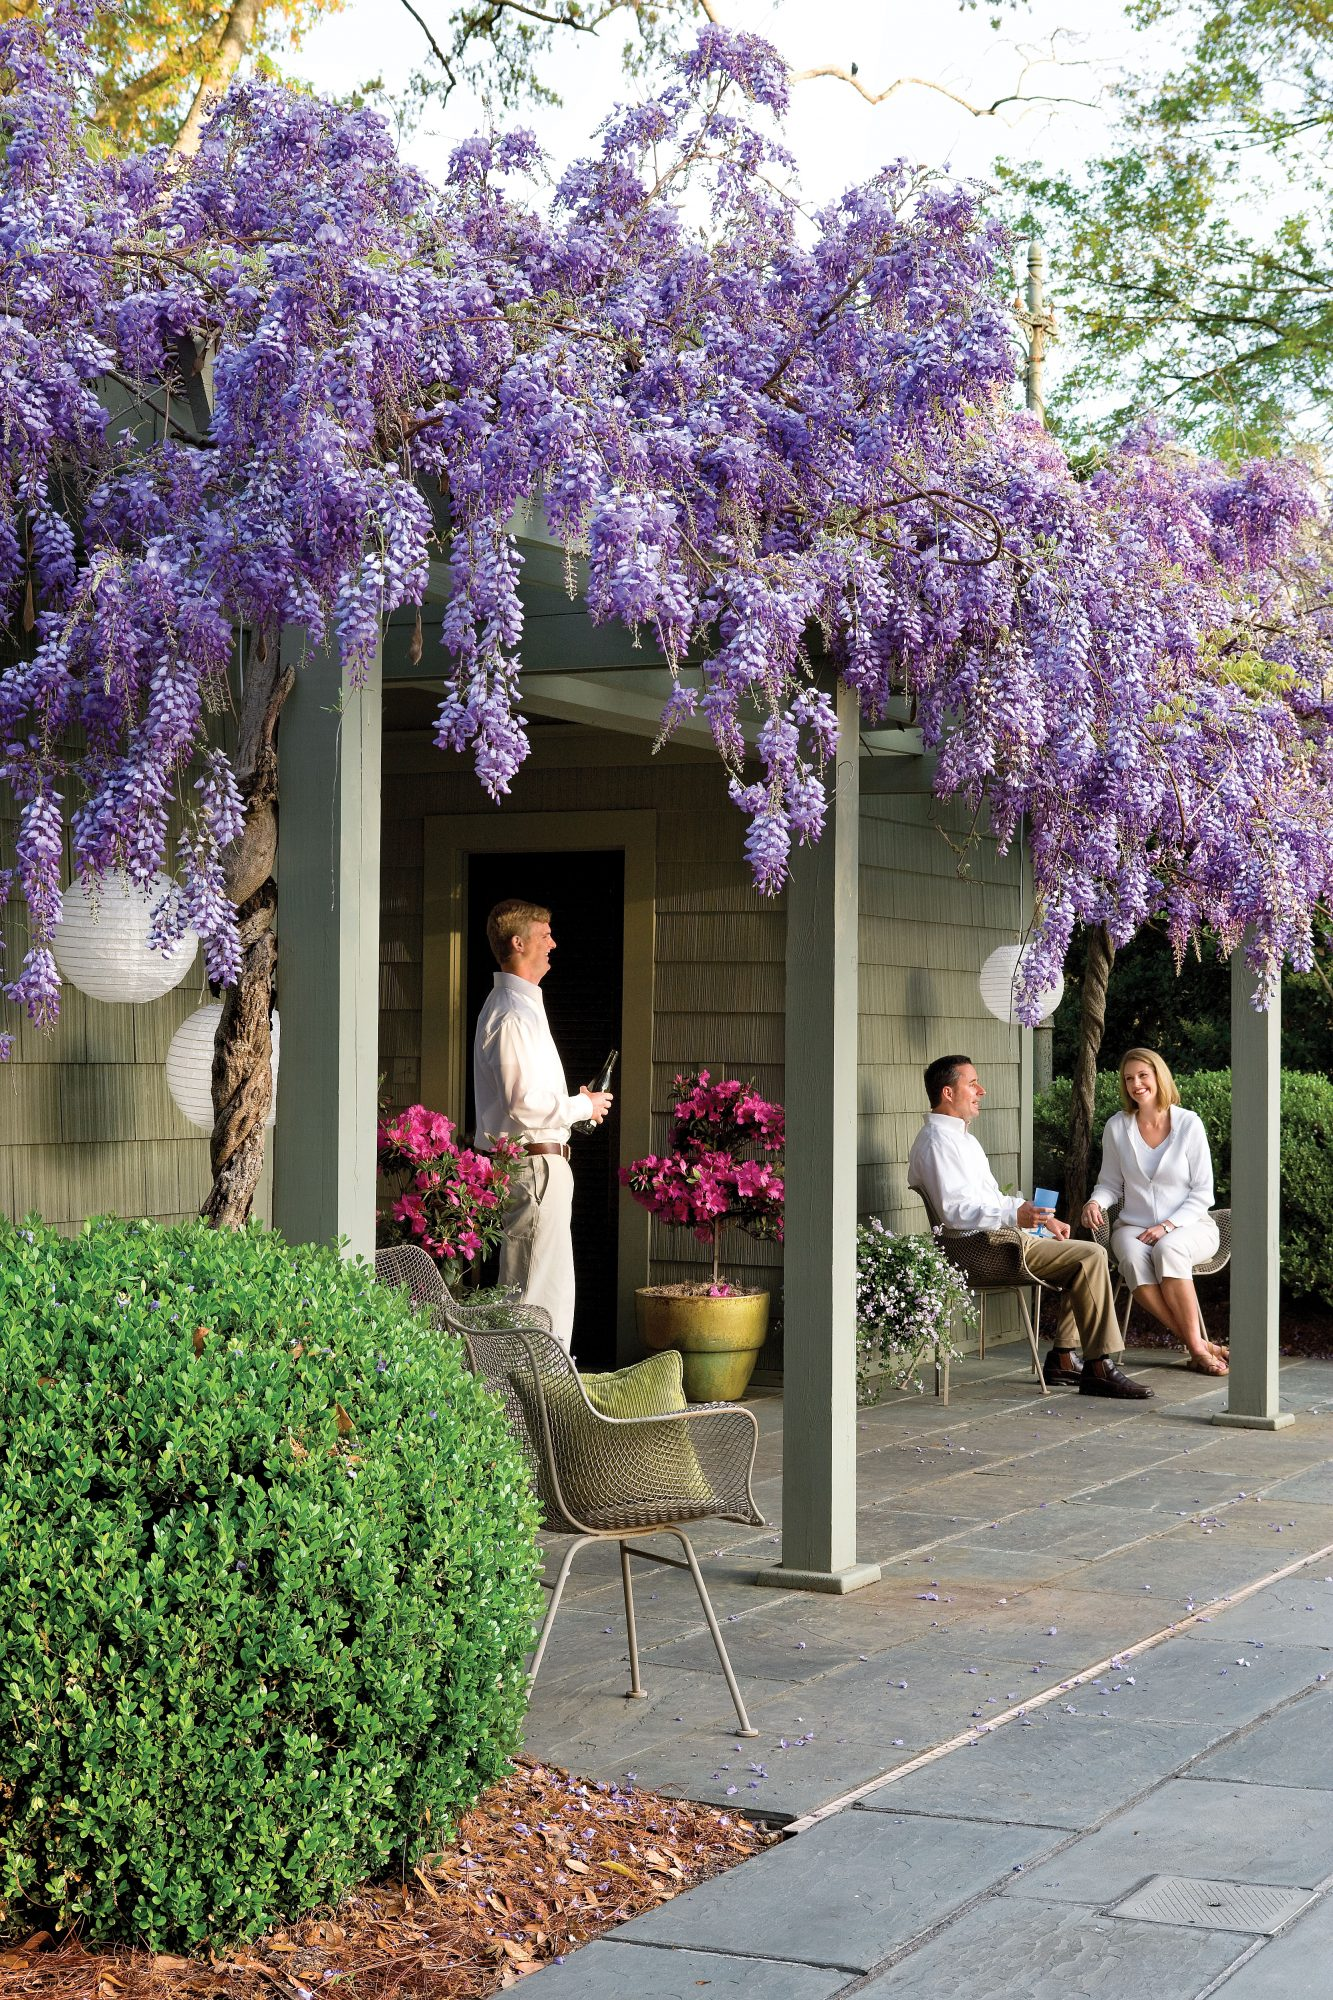 Wisteria Vines With Purple Flowers Also Grow As Trees Shrubs